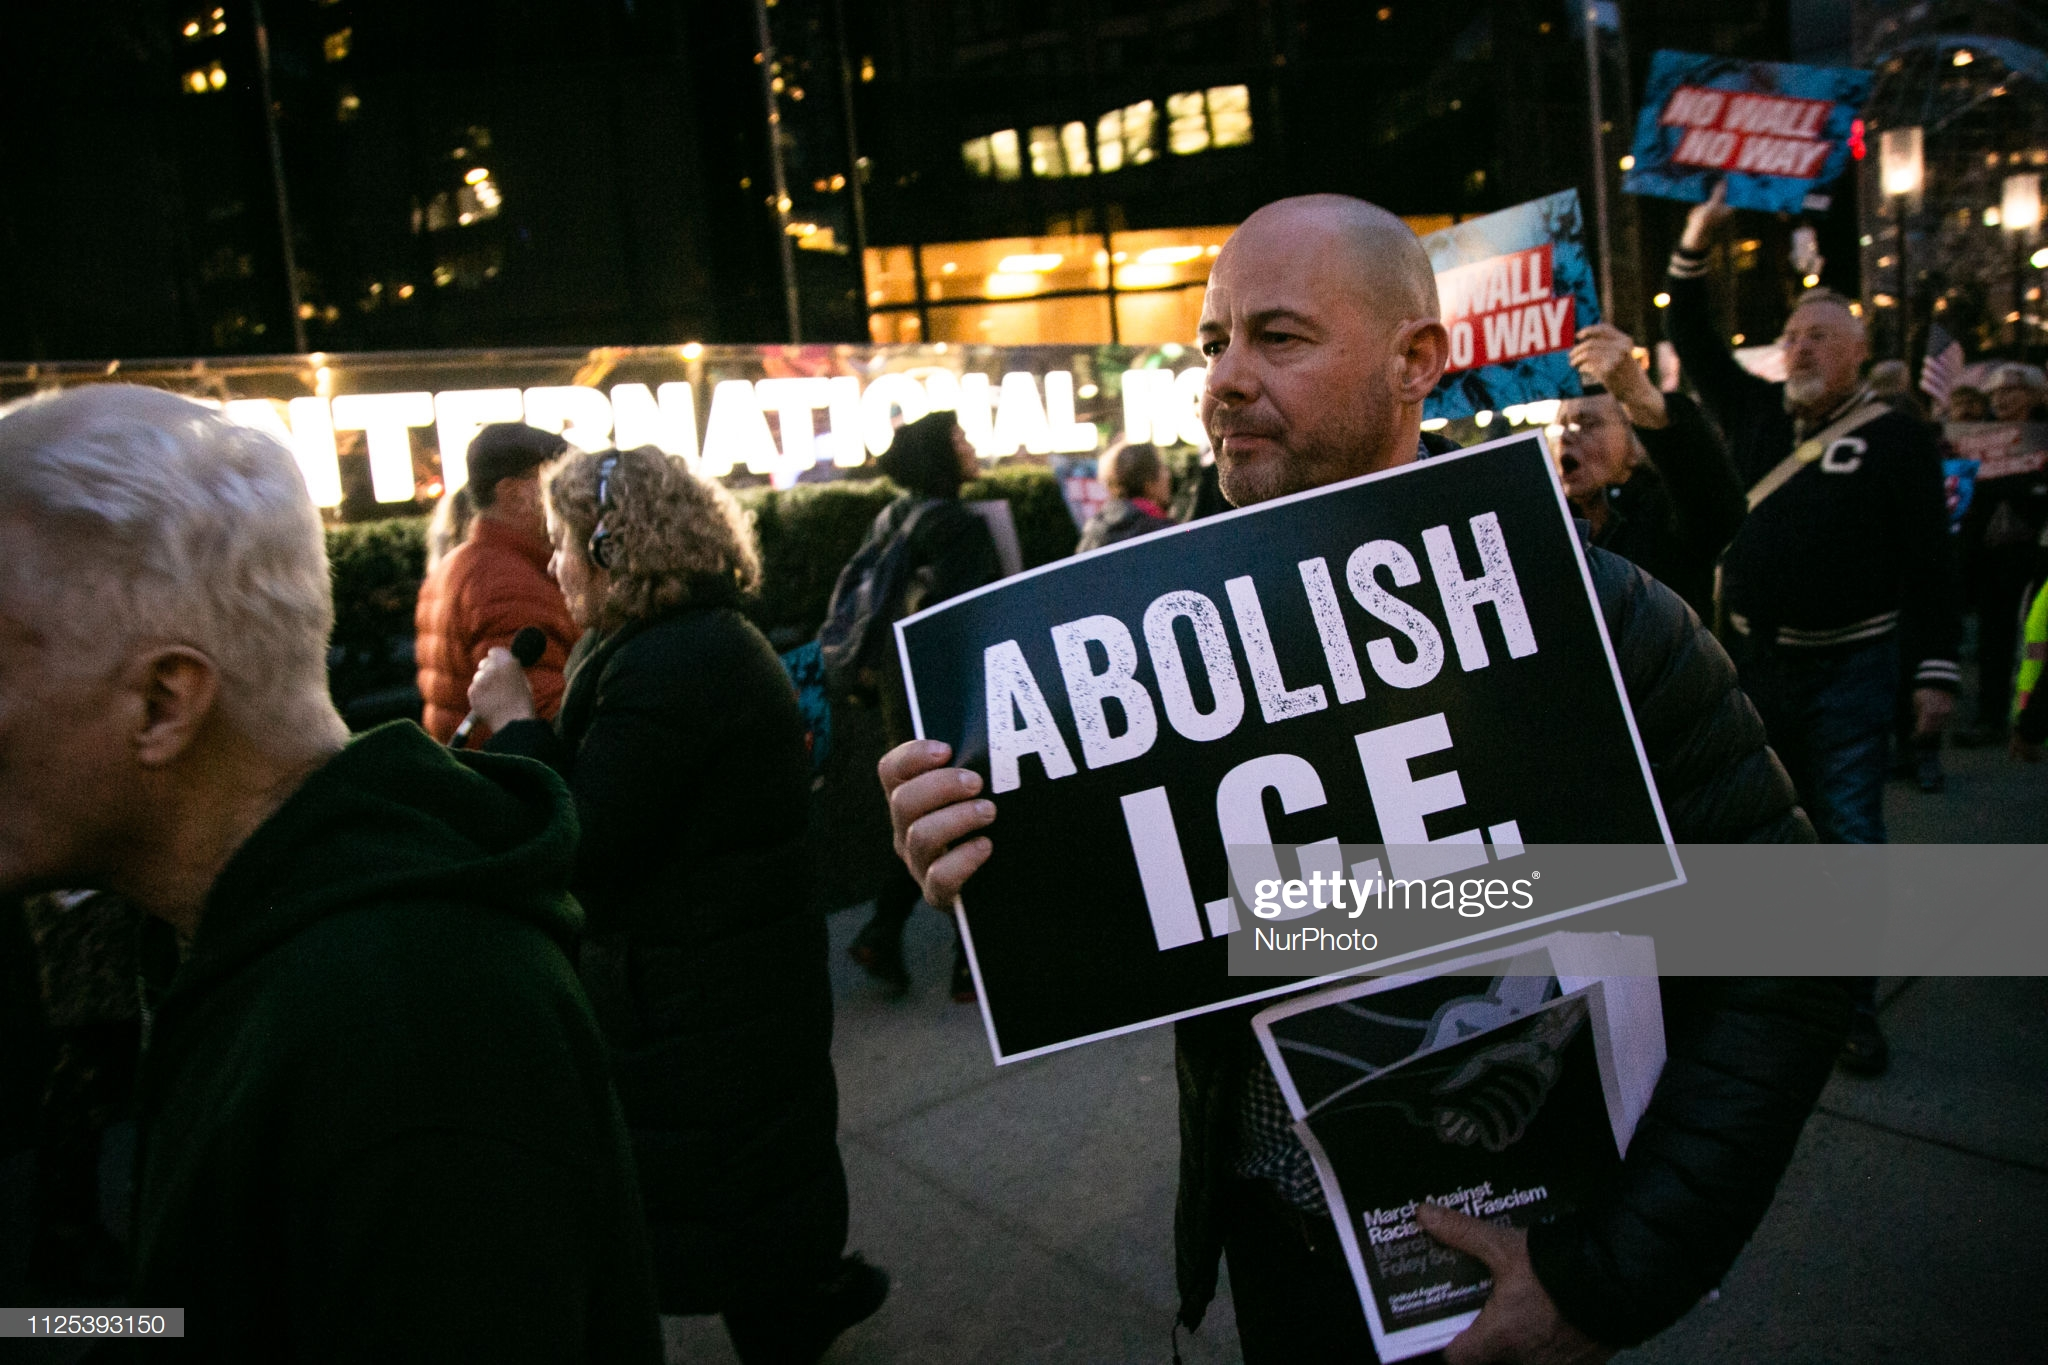 People hold signs that read 'Abolish I.C.E.' in front of Trump International Hotel on February 15, 2019 in New York City. The group is protesting U.S. President Donald Trump's declaration of a National Emergency in order to build his proposed border wall. (Photo by Karla Ann Cote/NurPhoto via Getty Images)